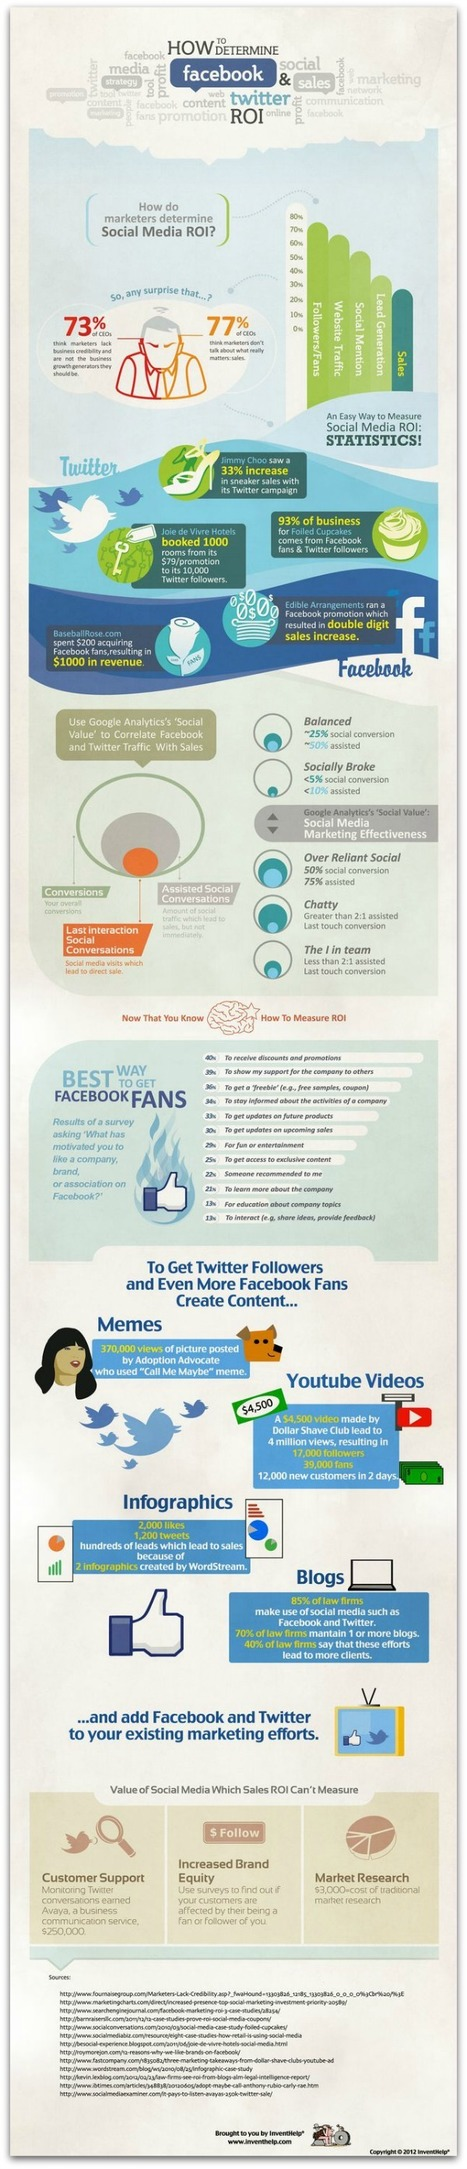 Infographic: How to measure Facebook and Twitter ROI | AtDotCom Social media | Scoop.it